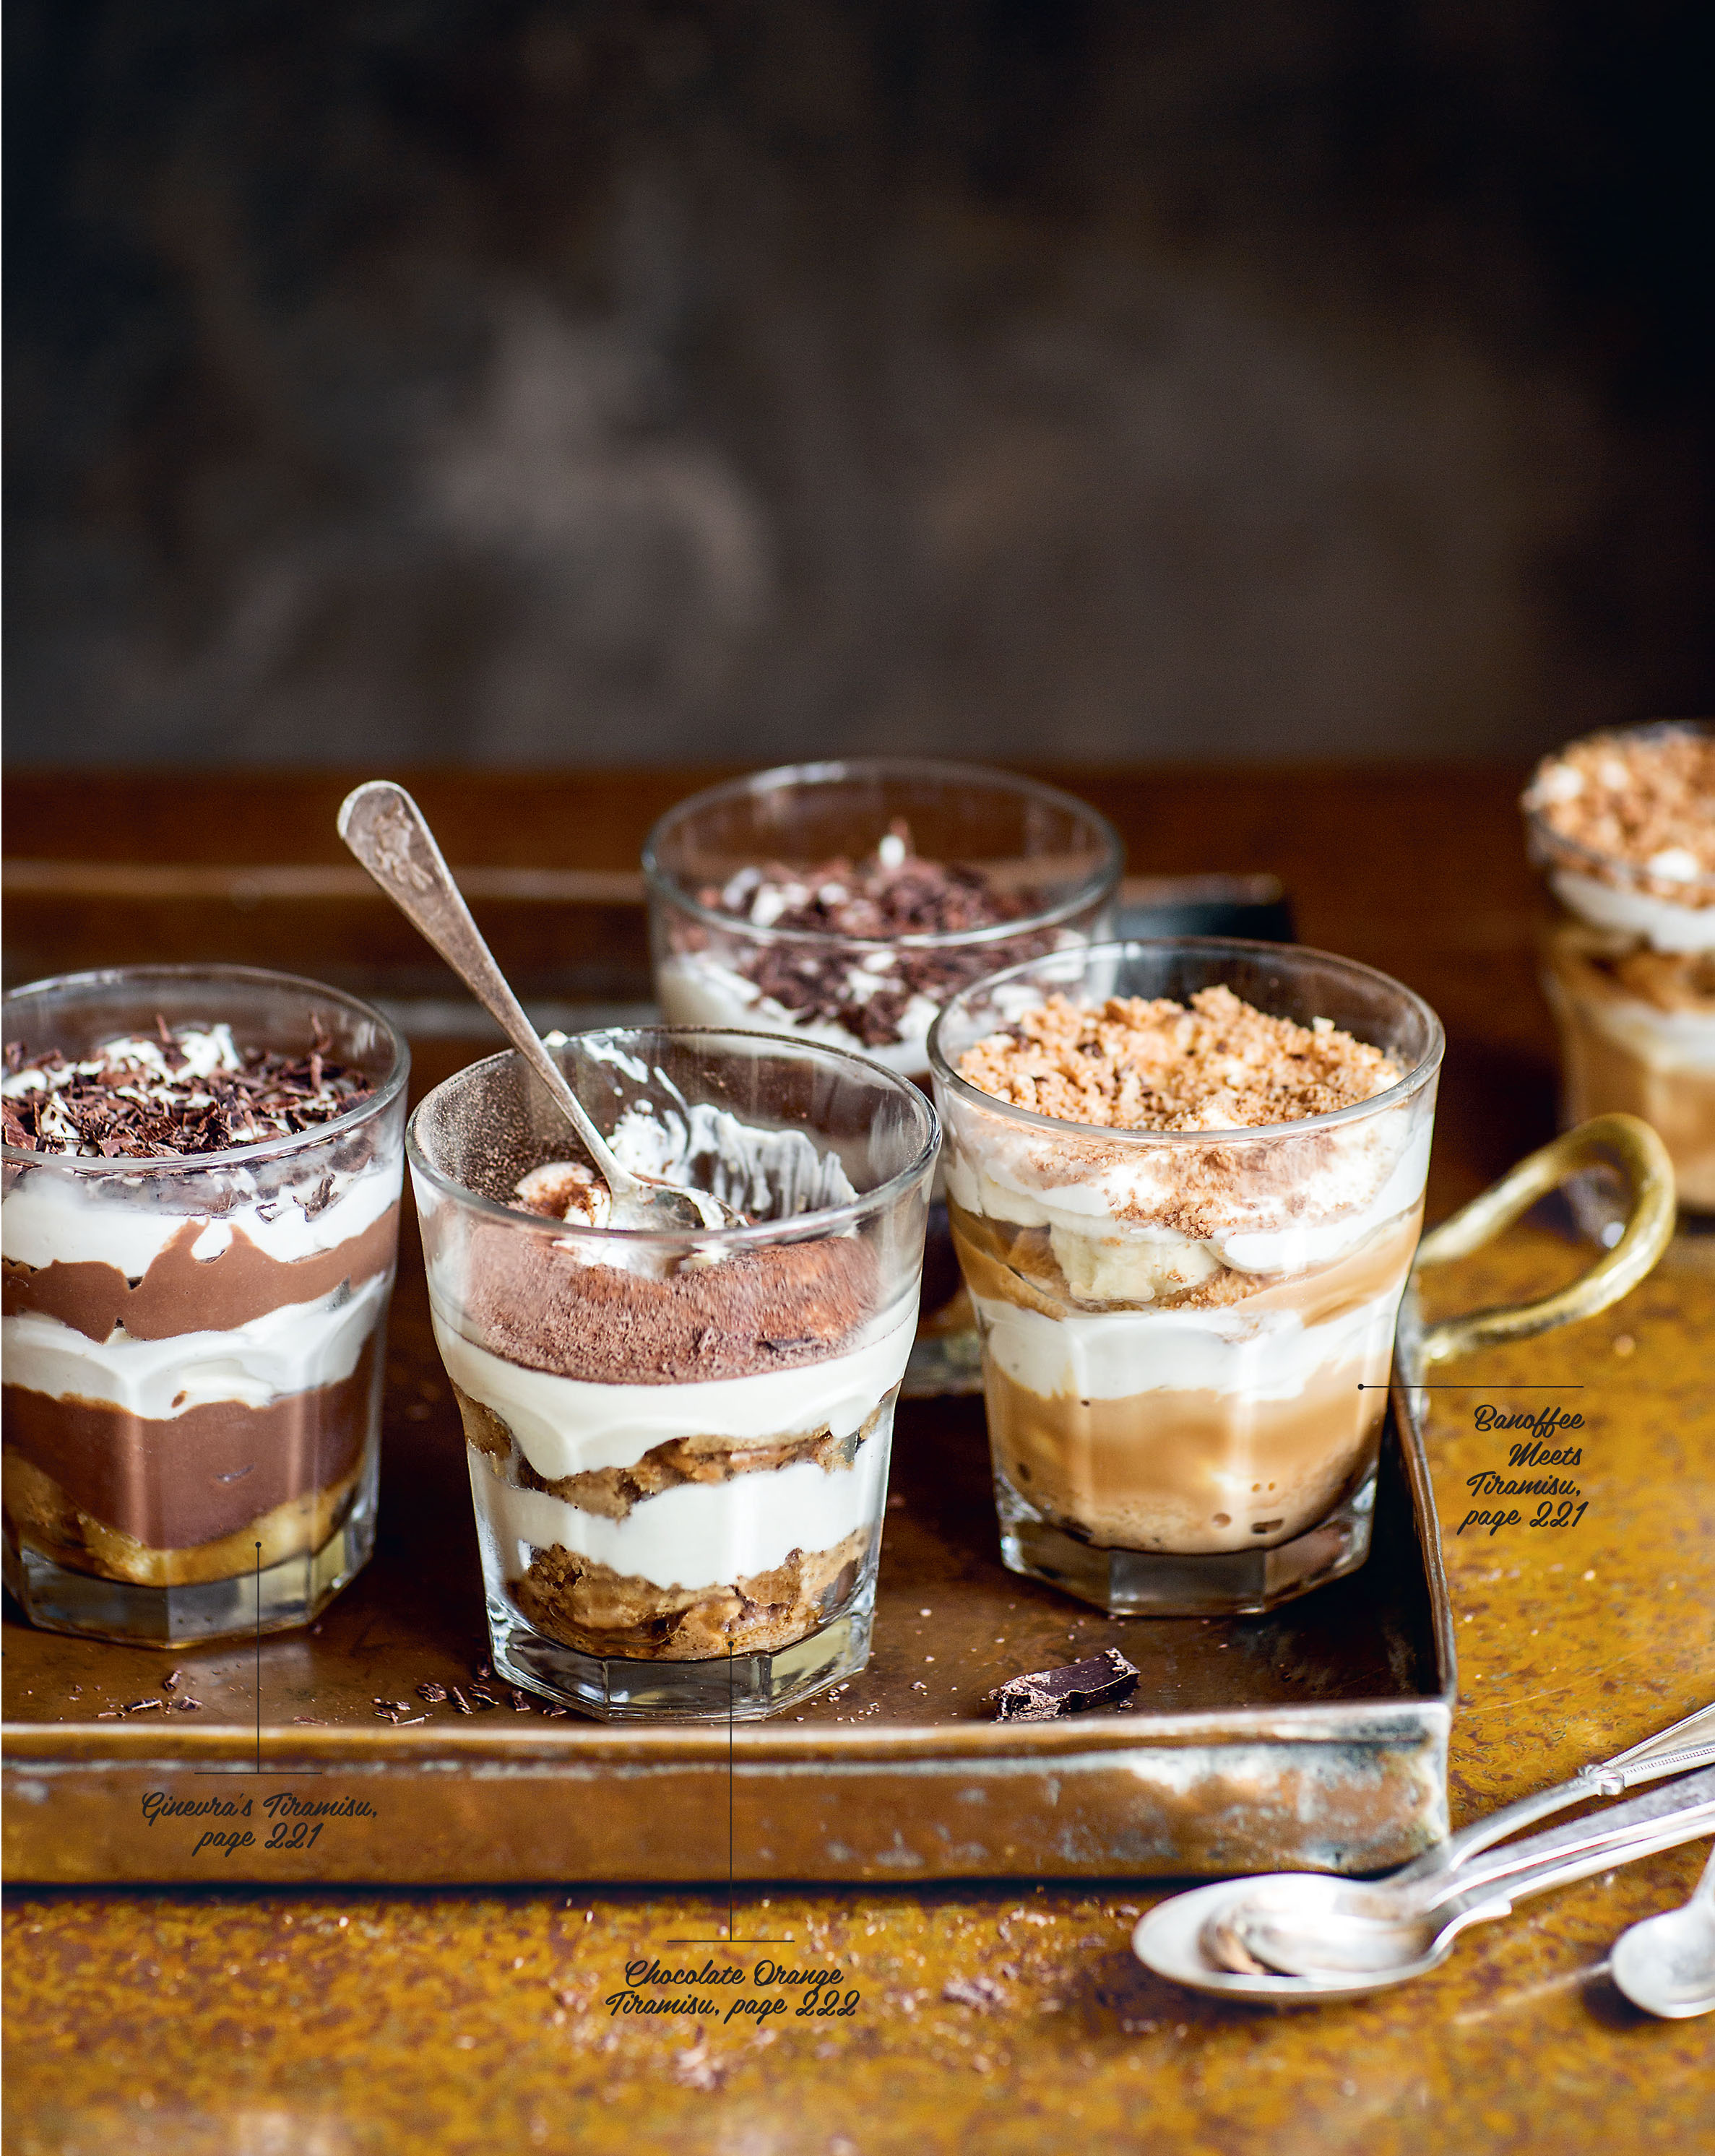 Tiramisu three ways